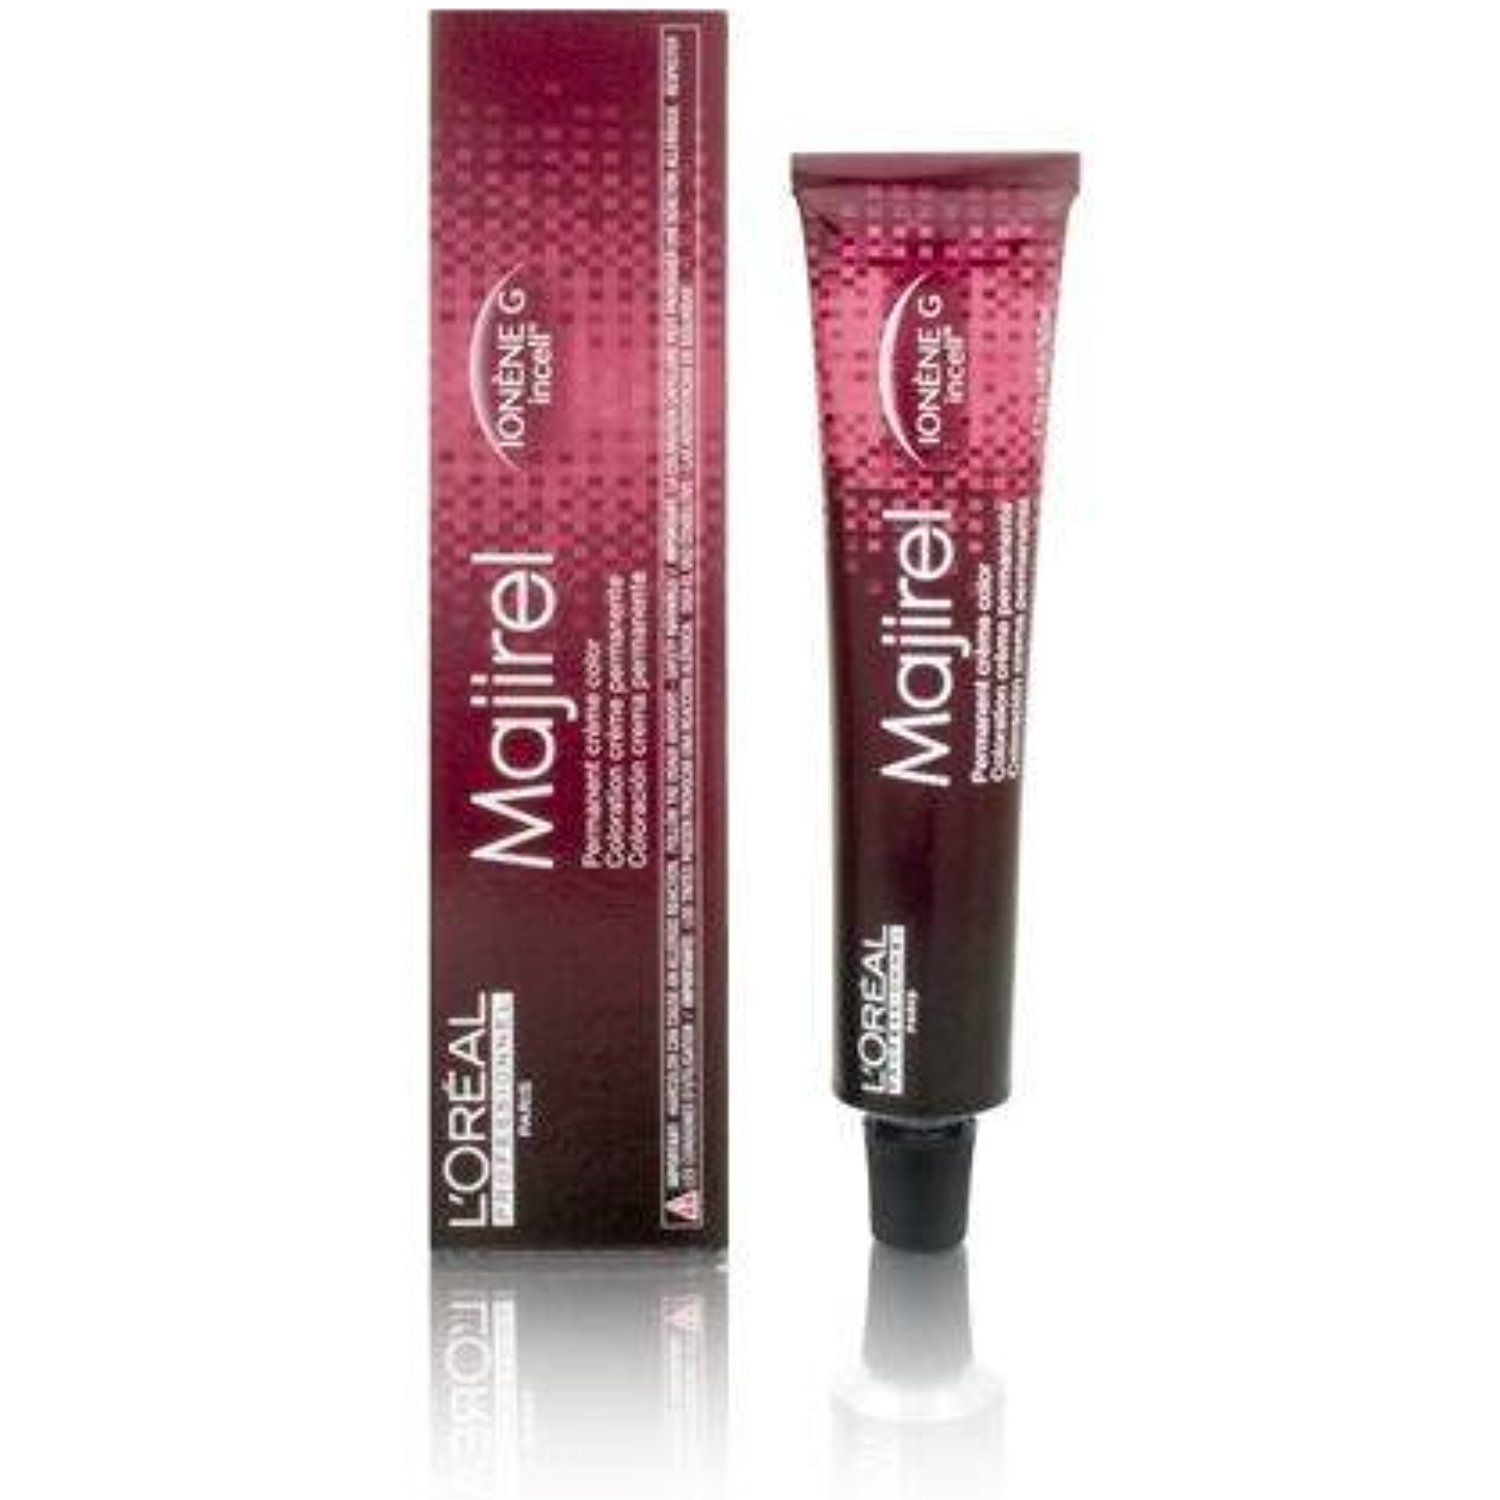 L Oreal Professionnel Majirel Permanent Creme Color Ionene G Incell 8 34 8gc You Can Find More Details By Visiting L Oreal Professionnel Loreal Creme Color